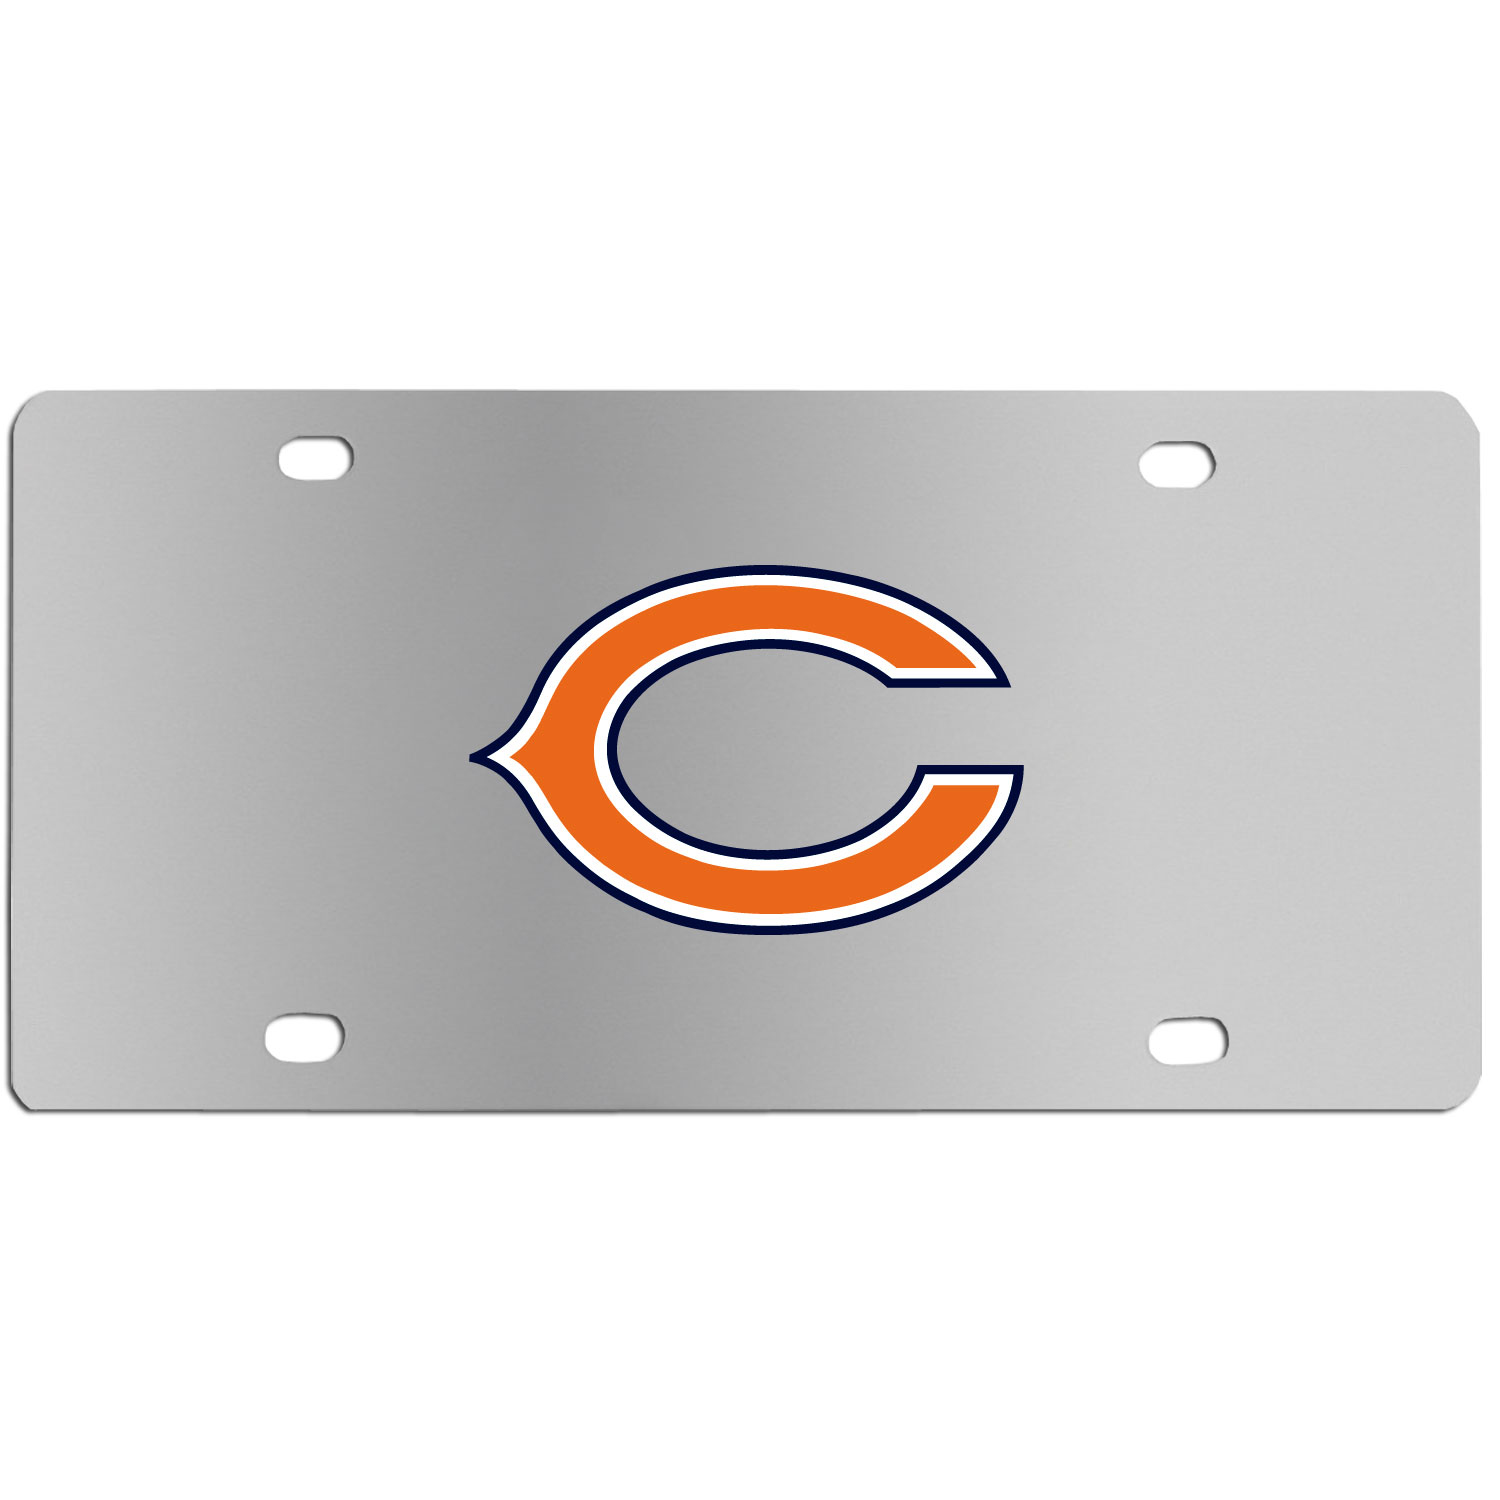 Chicago Bears Steel License Plate Wall Plaque - This high-quality stainless steel license plate features a detailed team logo on a the polished surface. The attractive plate is perfect for wall mounting in your home or office to become the perfect die-hard Chicago Bears fan decor.